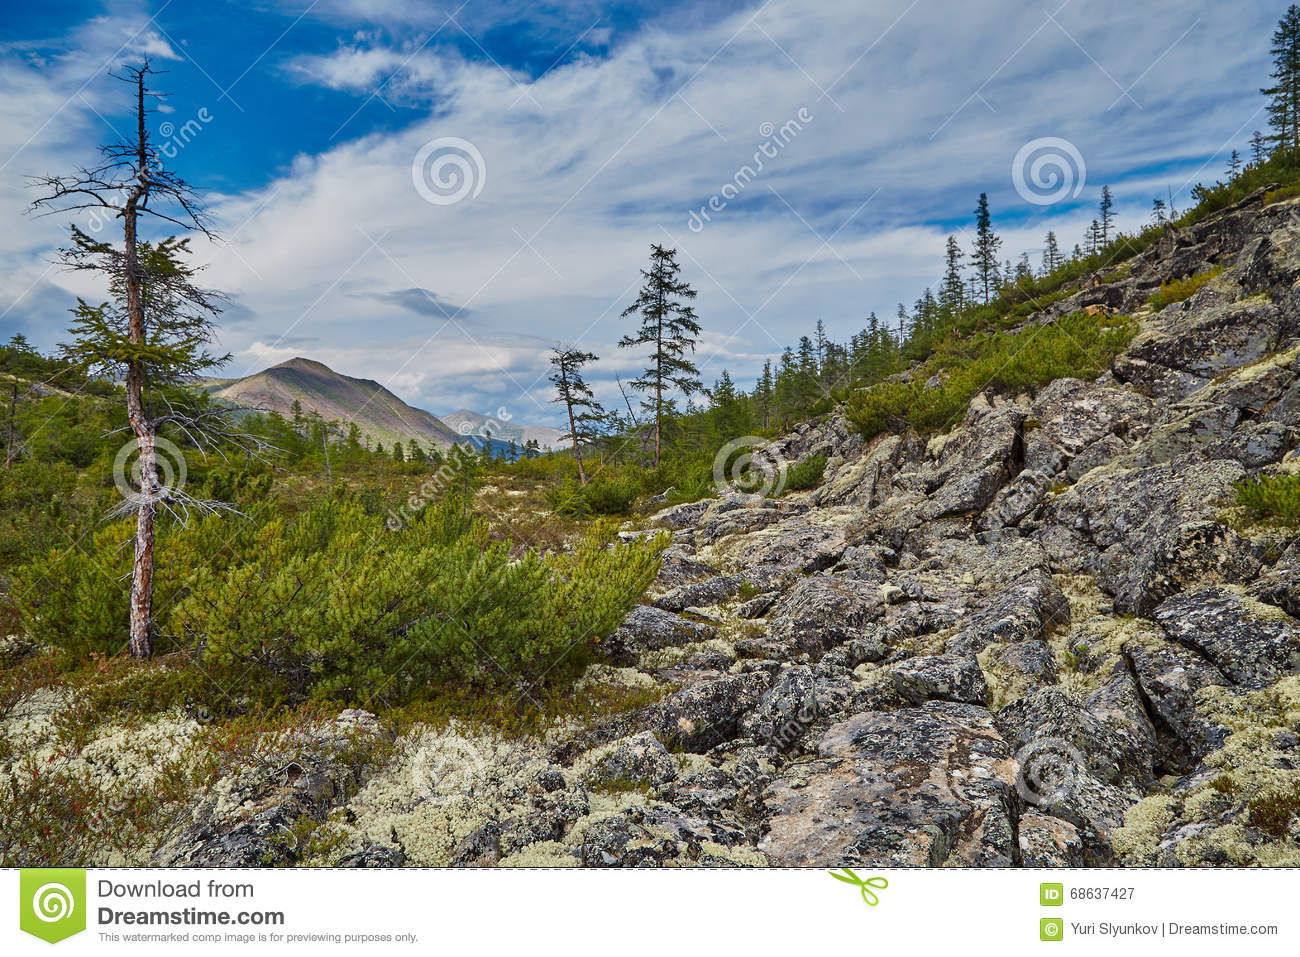 Boulders slope of mountain. A taiga in the summer. A stream valley